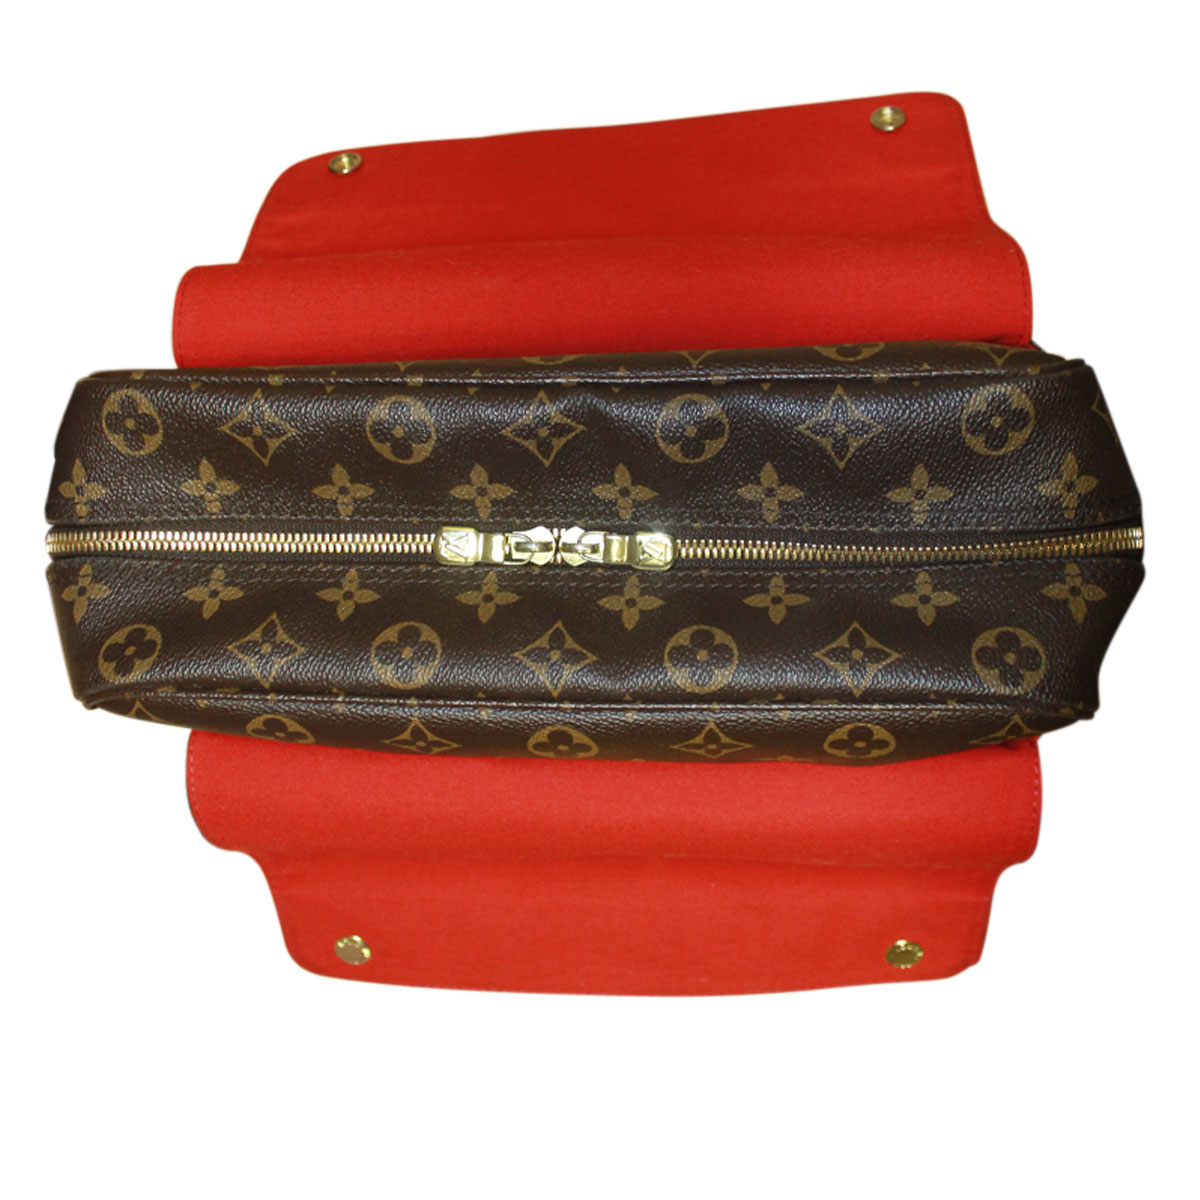 Louis Vuitton limited edition china run messenger bag